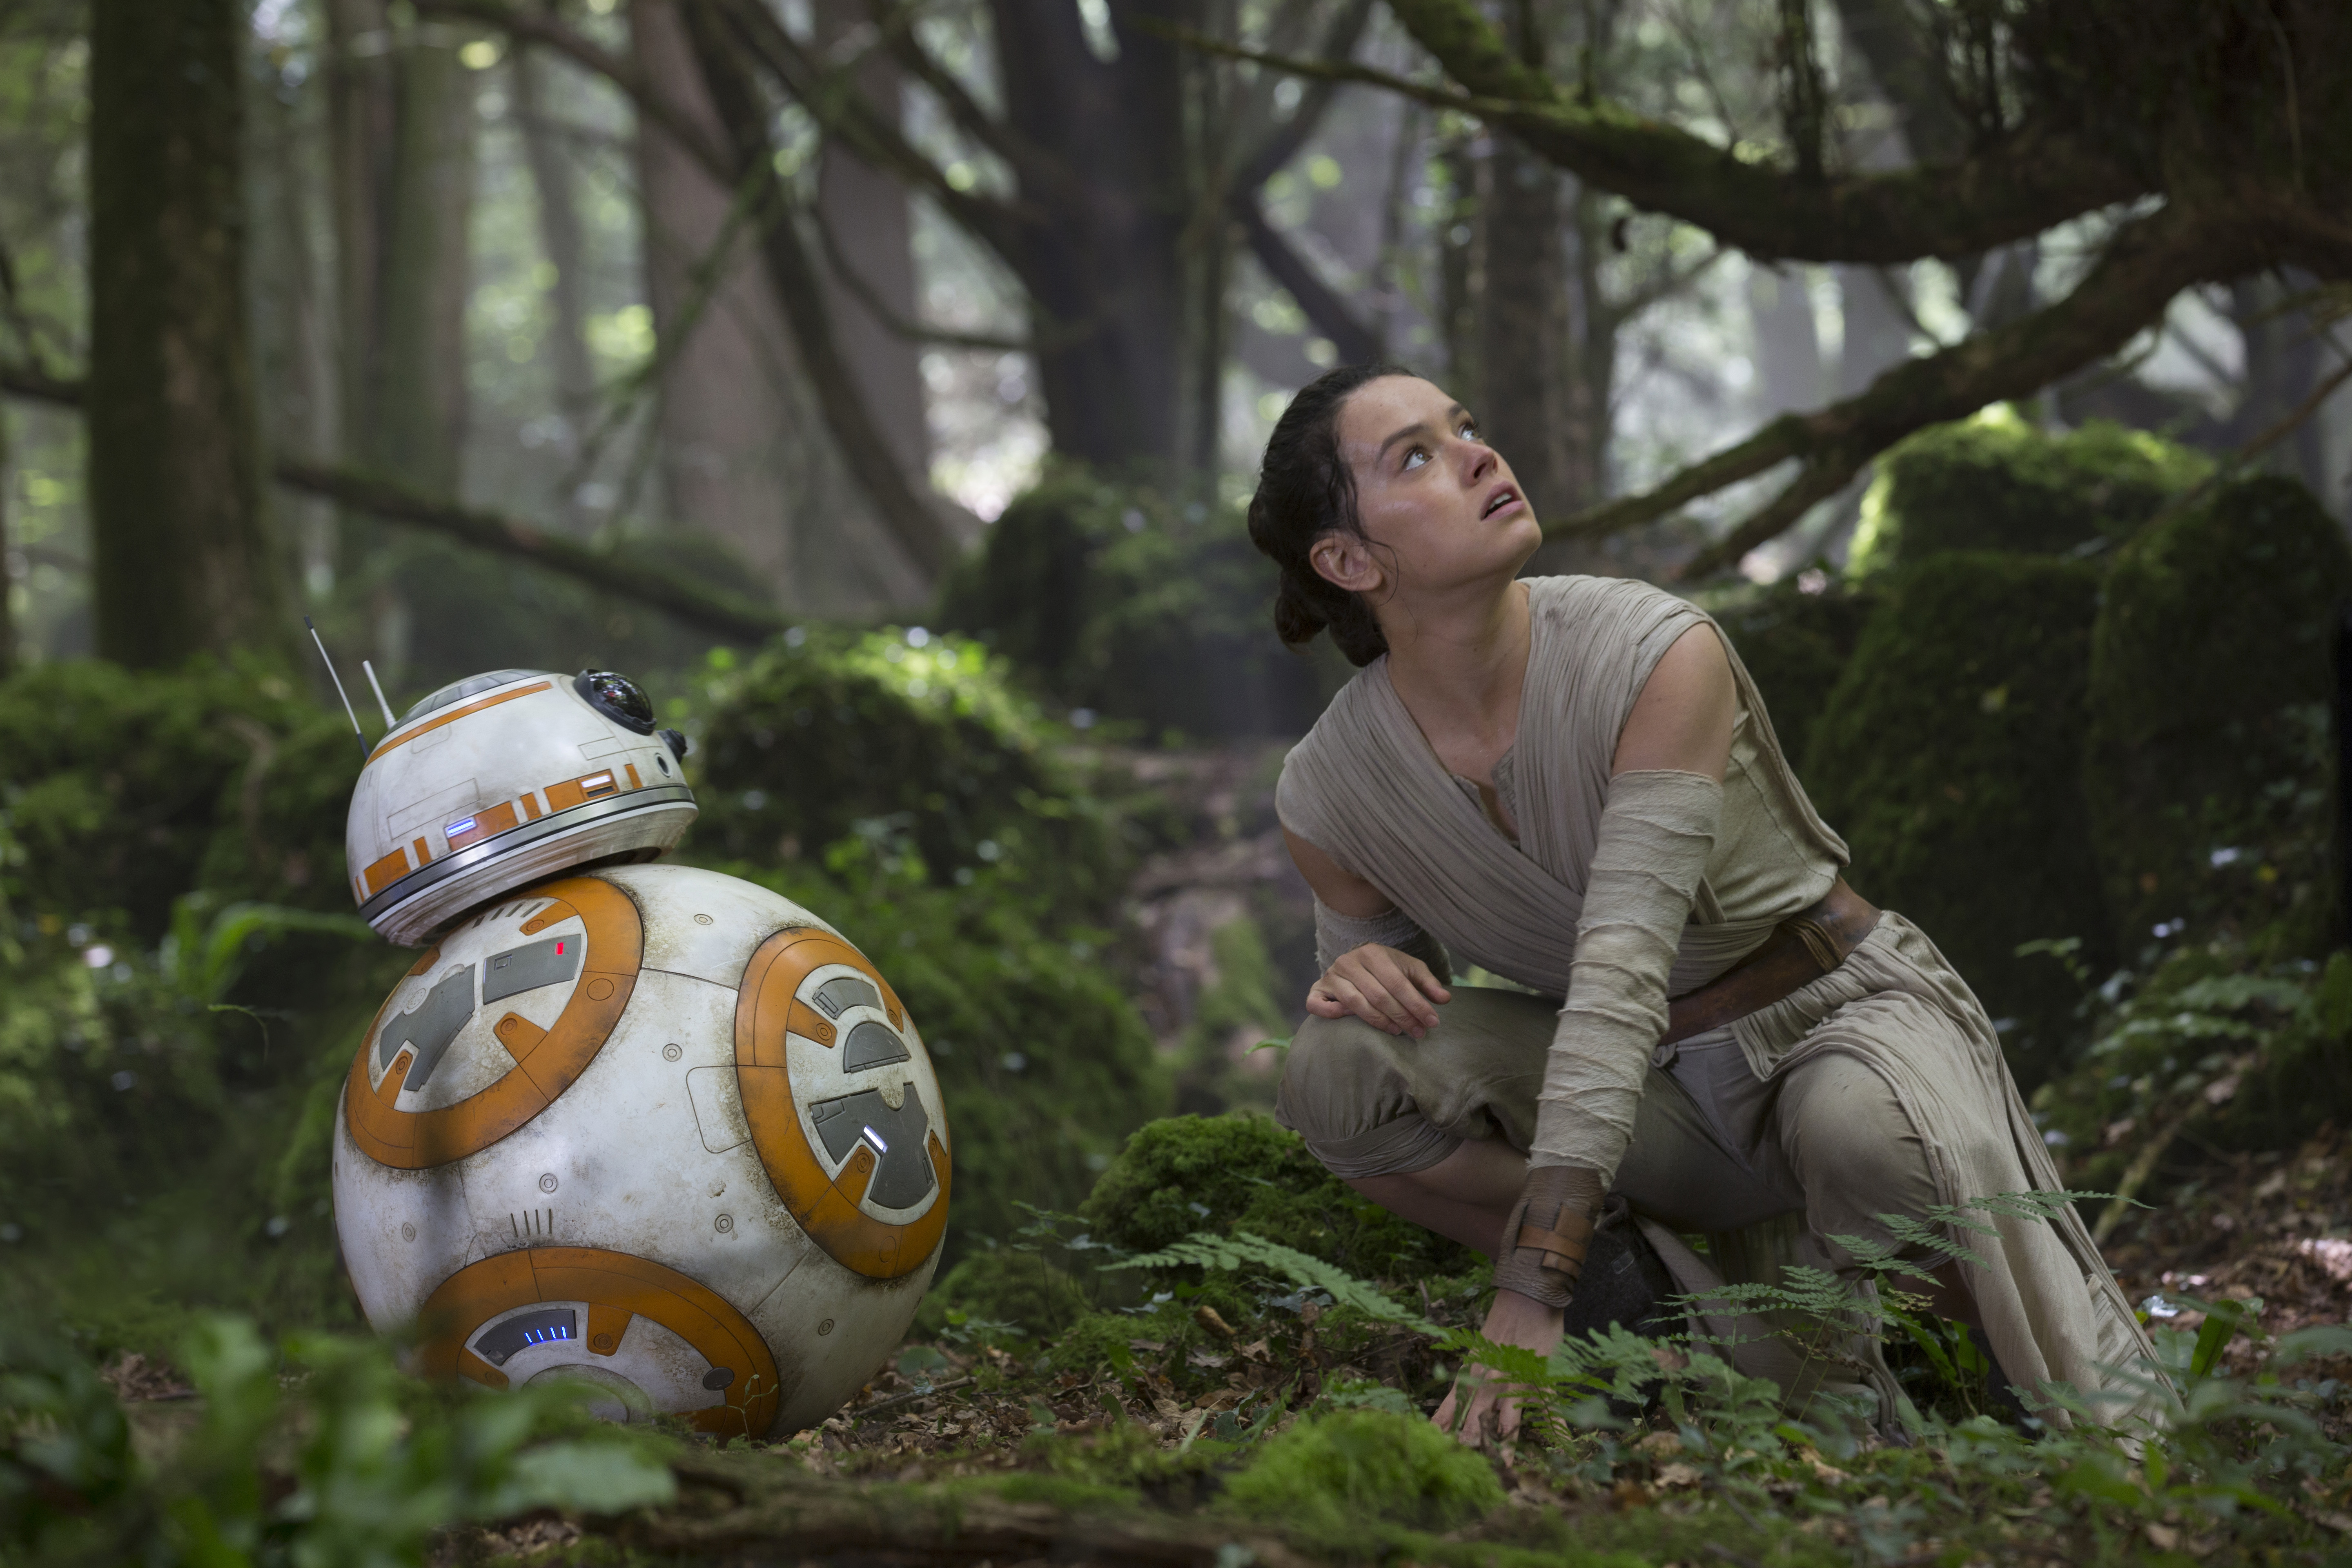 BB-8 and Rey, Daisy Ridley, in  Star Wars: The Force Awakens.